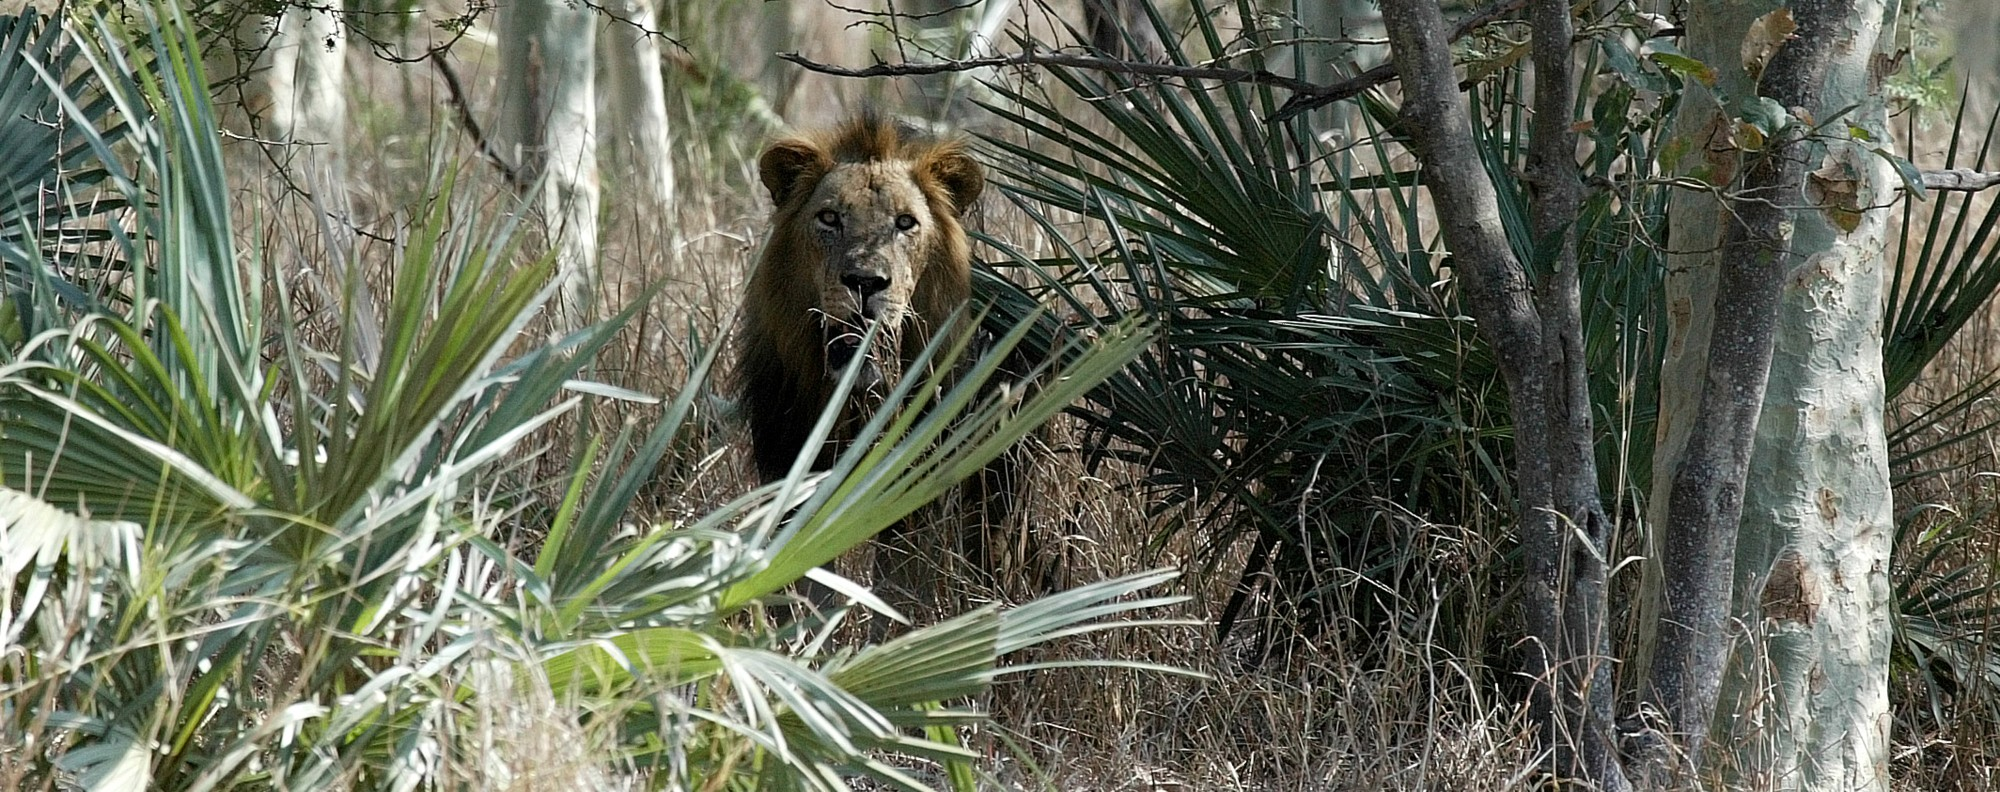 A male lion in Gorongosa National Park, in Mozambique.